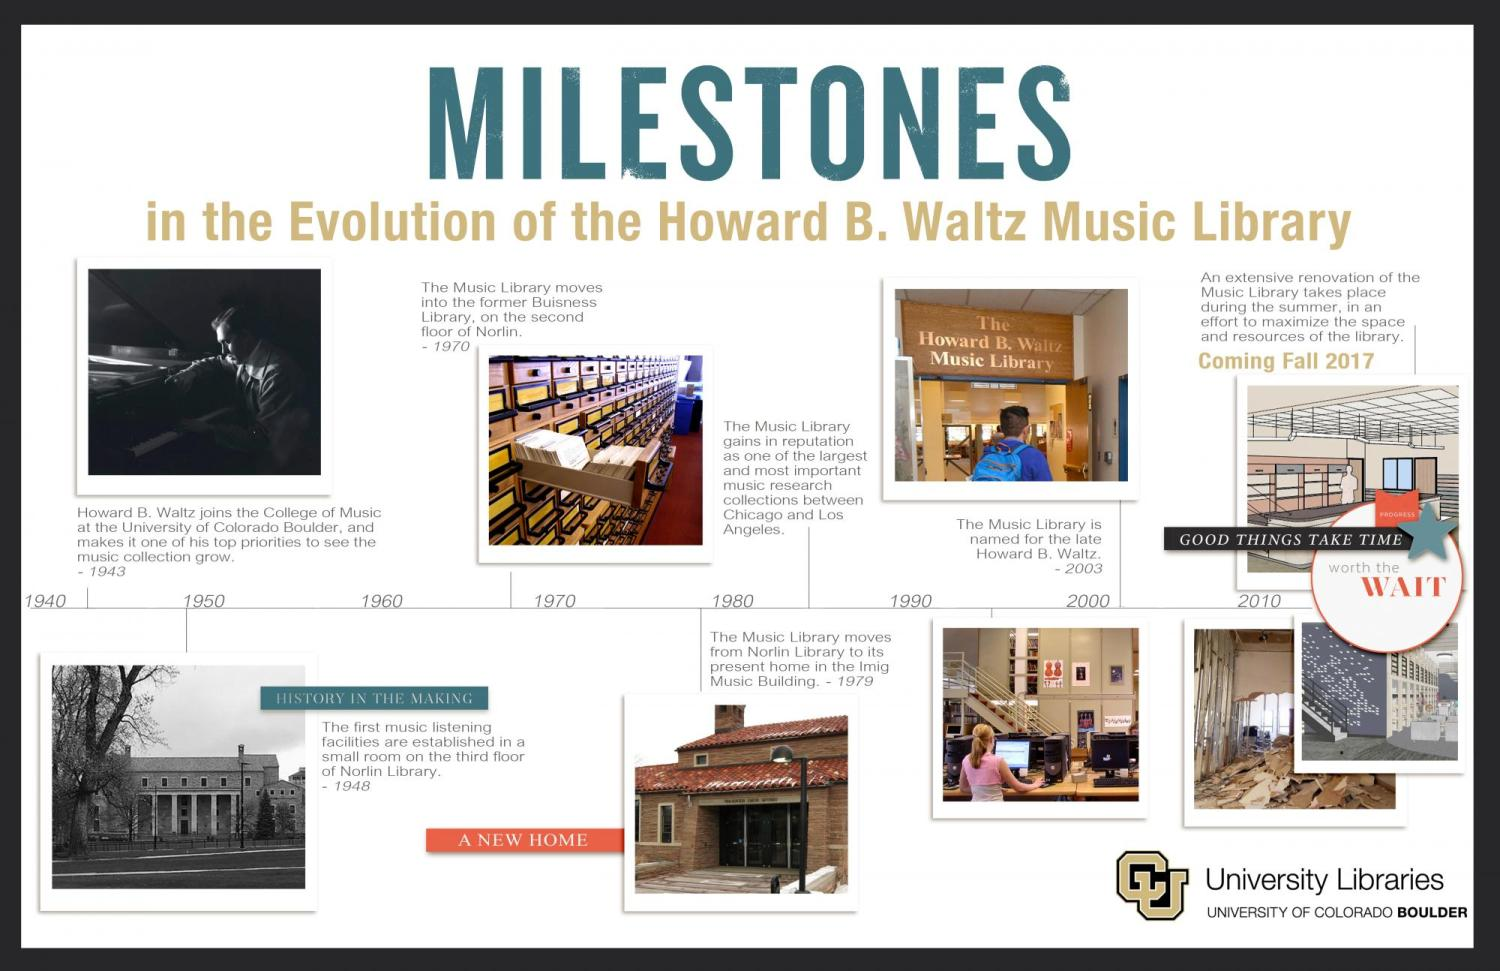 Timeline of the Evolution of the Music Library with milestones and dates